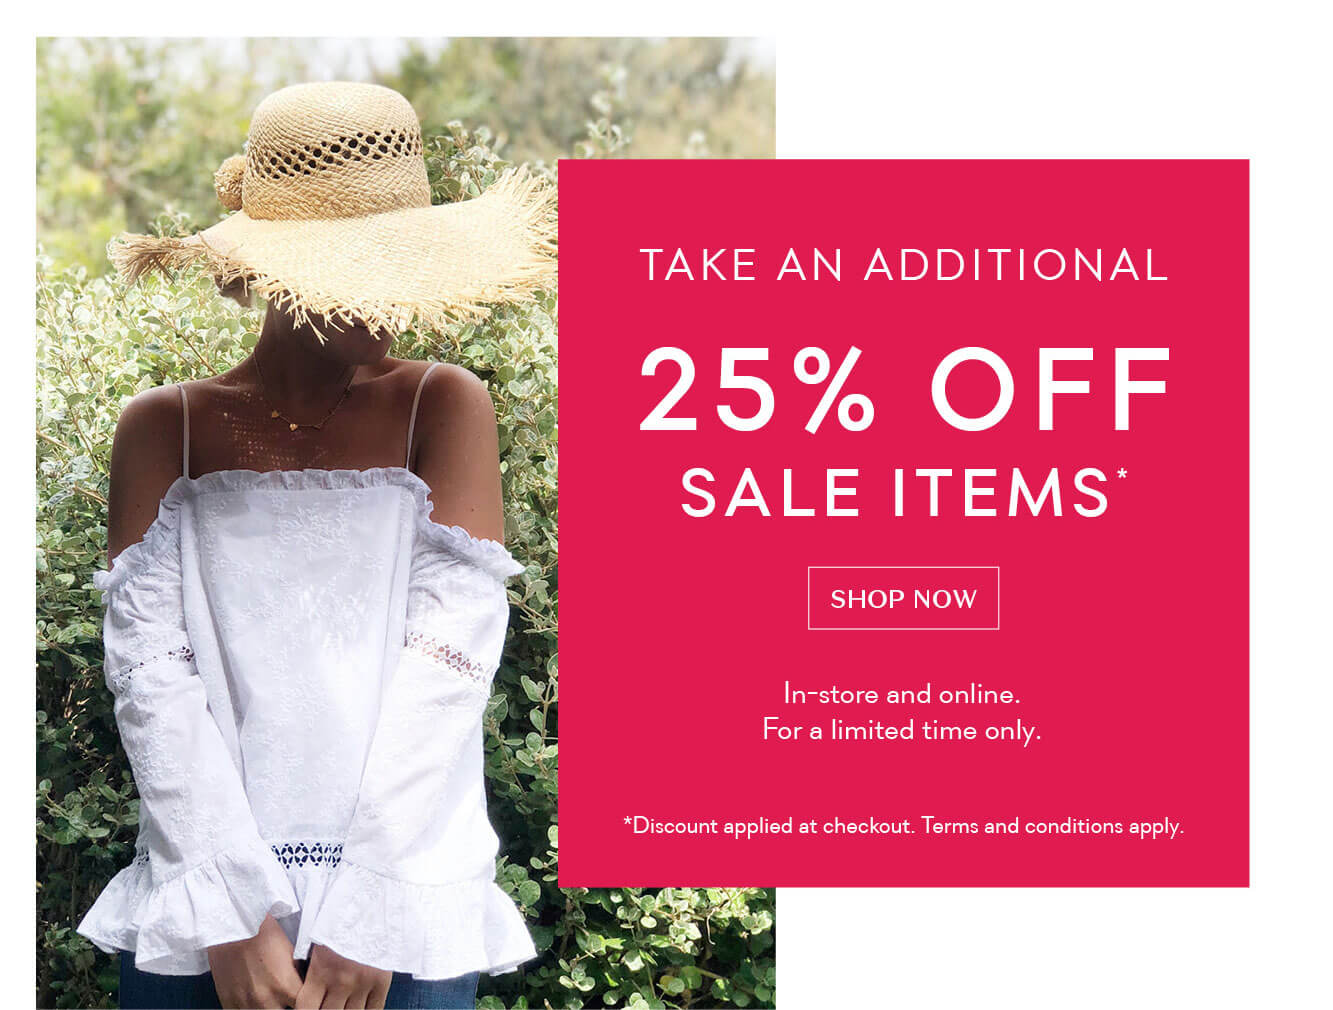 Take an additional 25% off sale items* - Shop Now